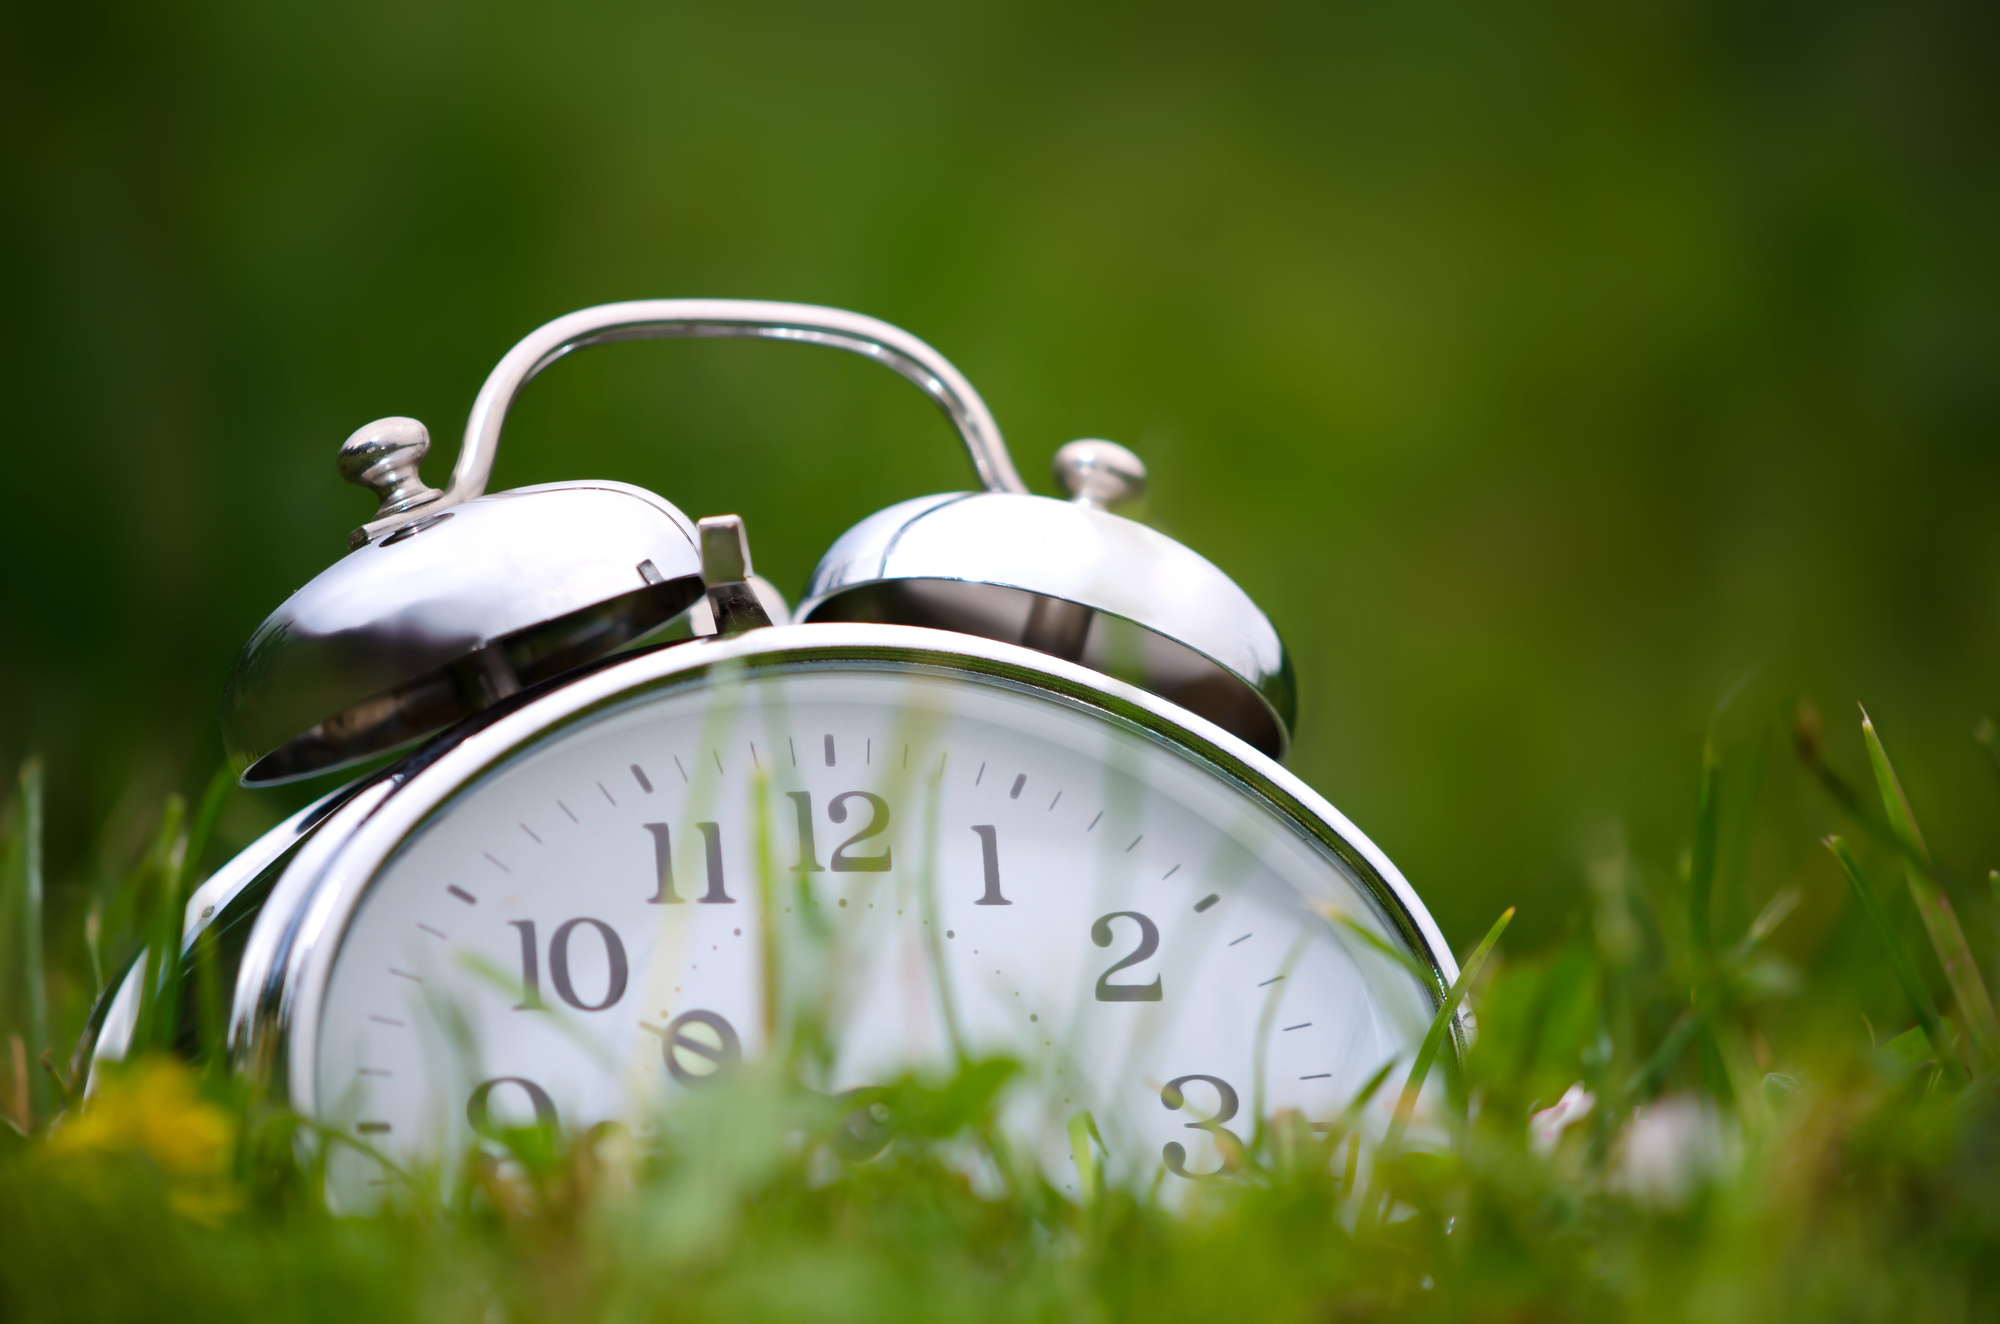 Tips To Stay Productive After Daylight Savings